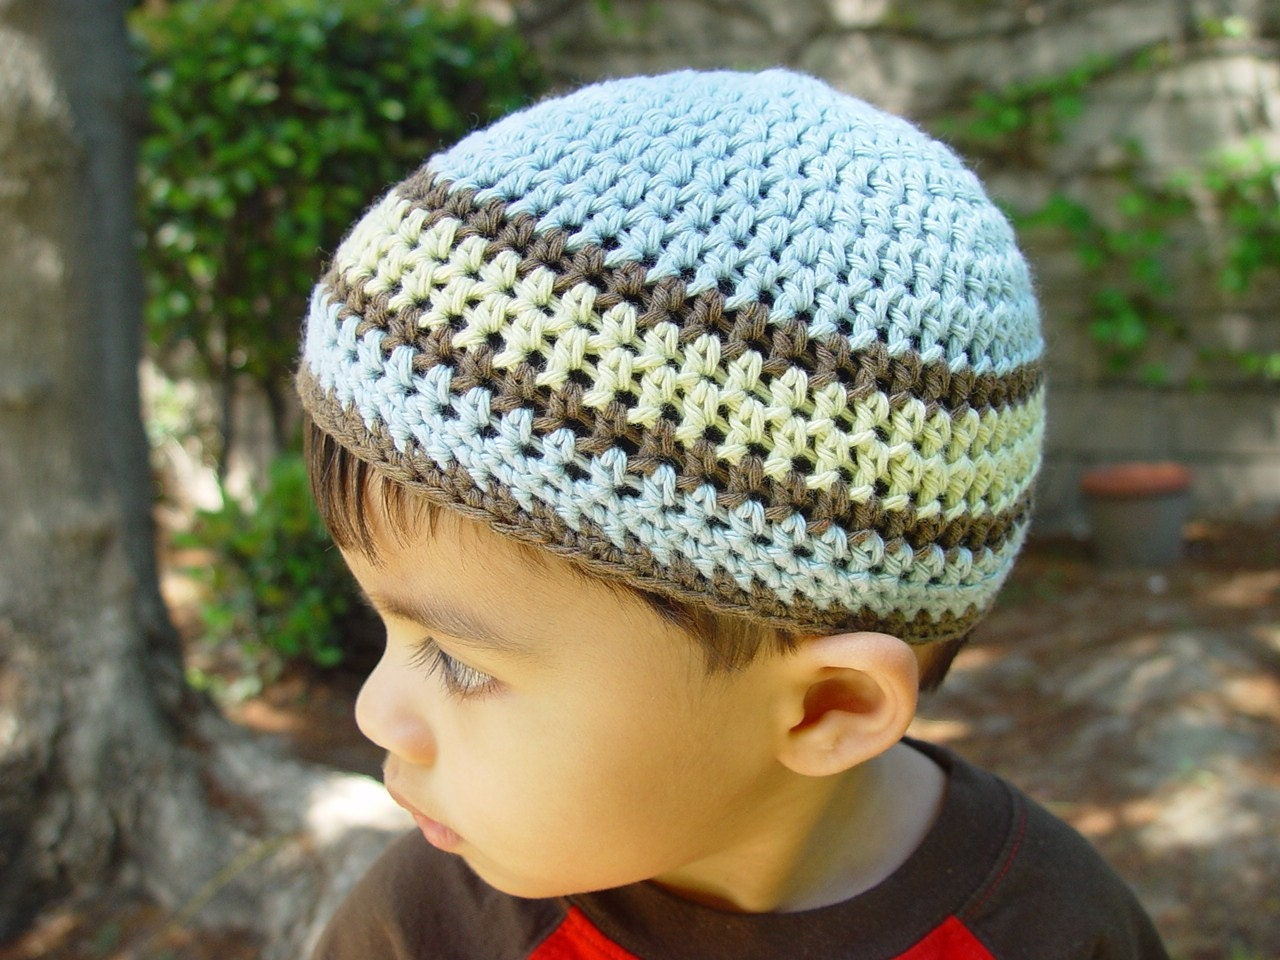 Organic cotton striped kufi, skullcap. For boys aged 1-4 yrs.